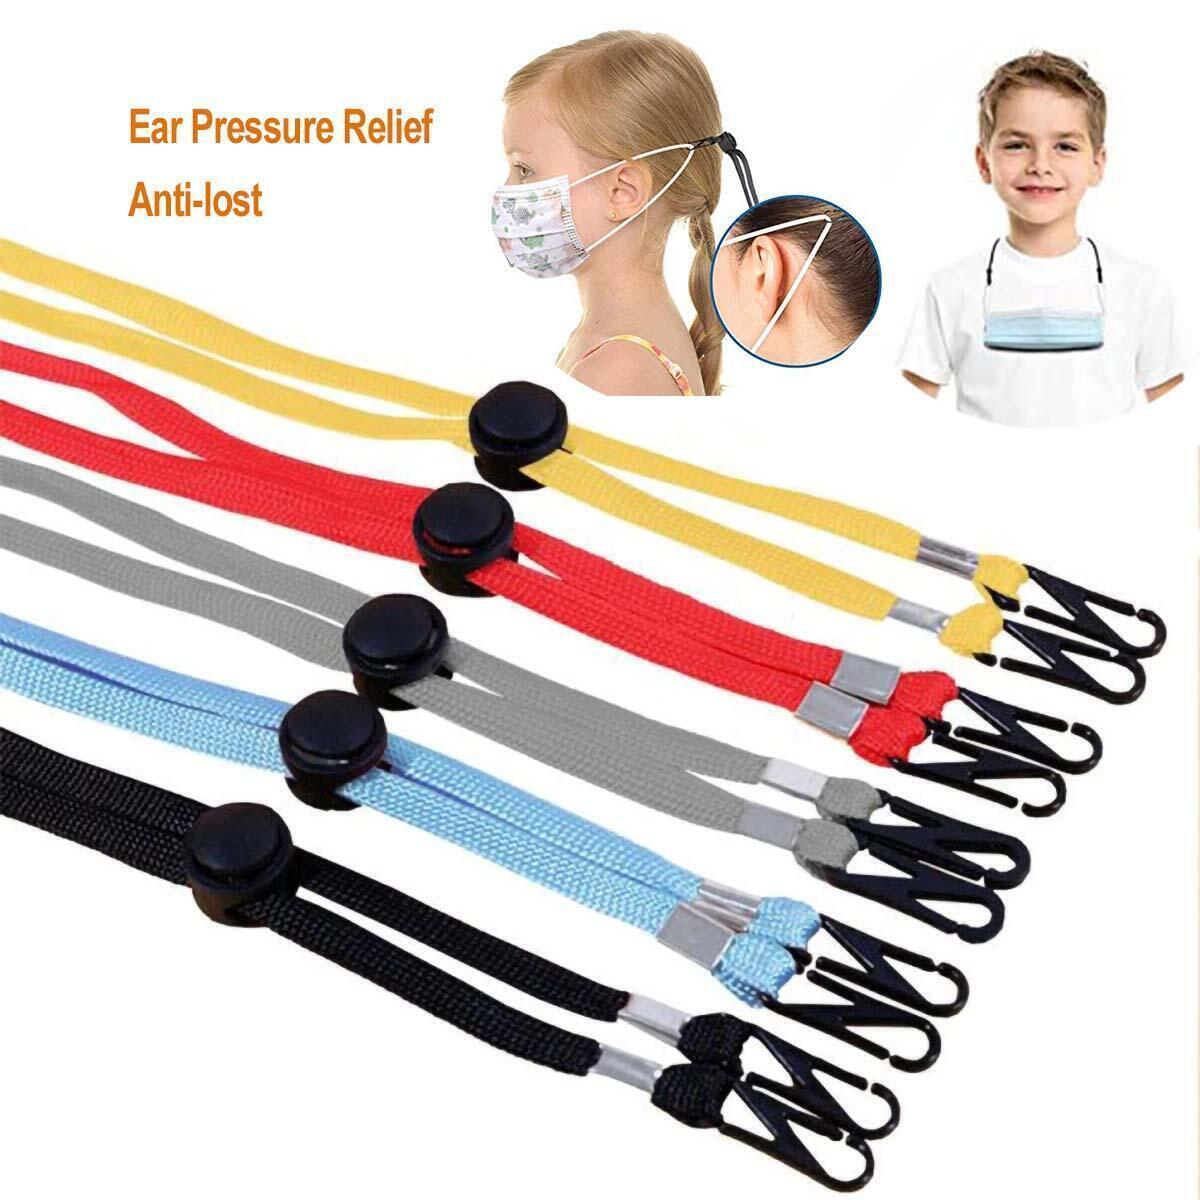 10-Pack Face Mask Lanyards -  Ear Pressure Relief Lanyards, Adjustable Anti-lost Mask Lanyard Strap to Protect Ears - 10 Colors